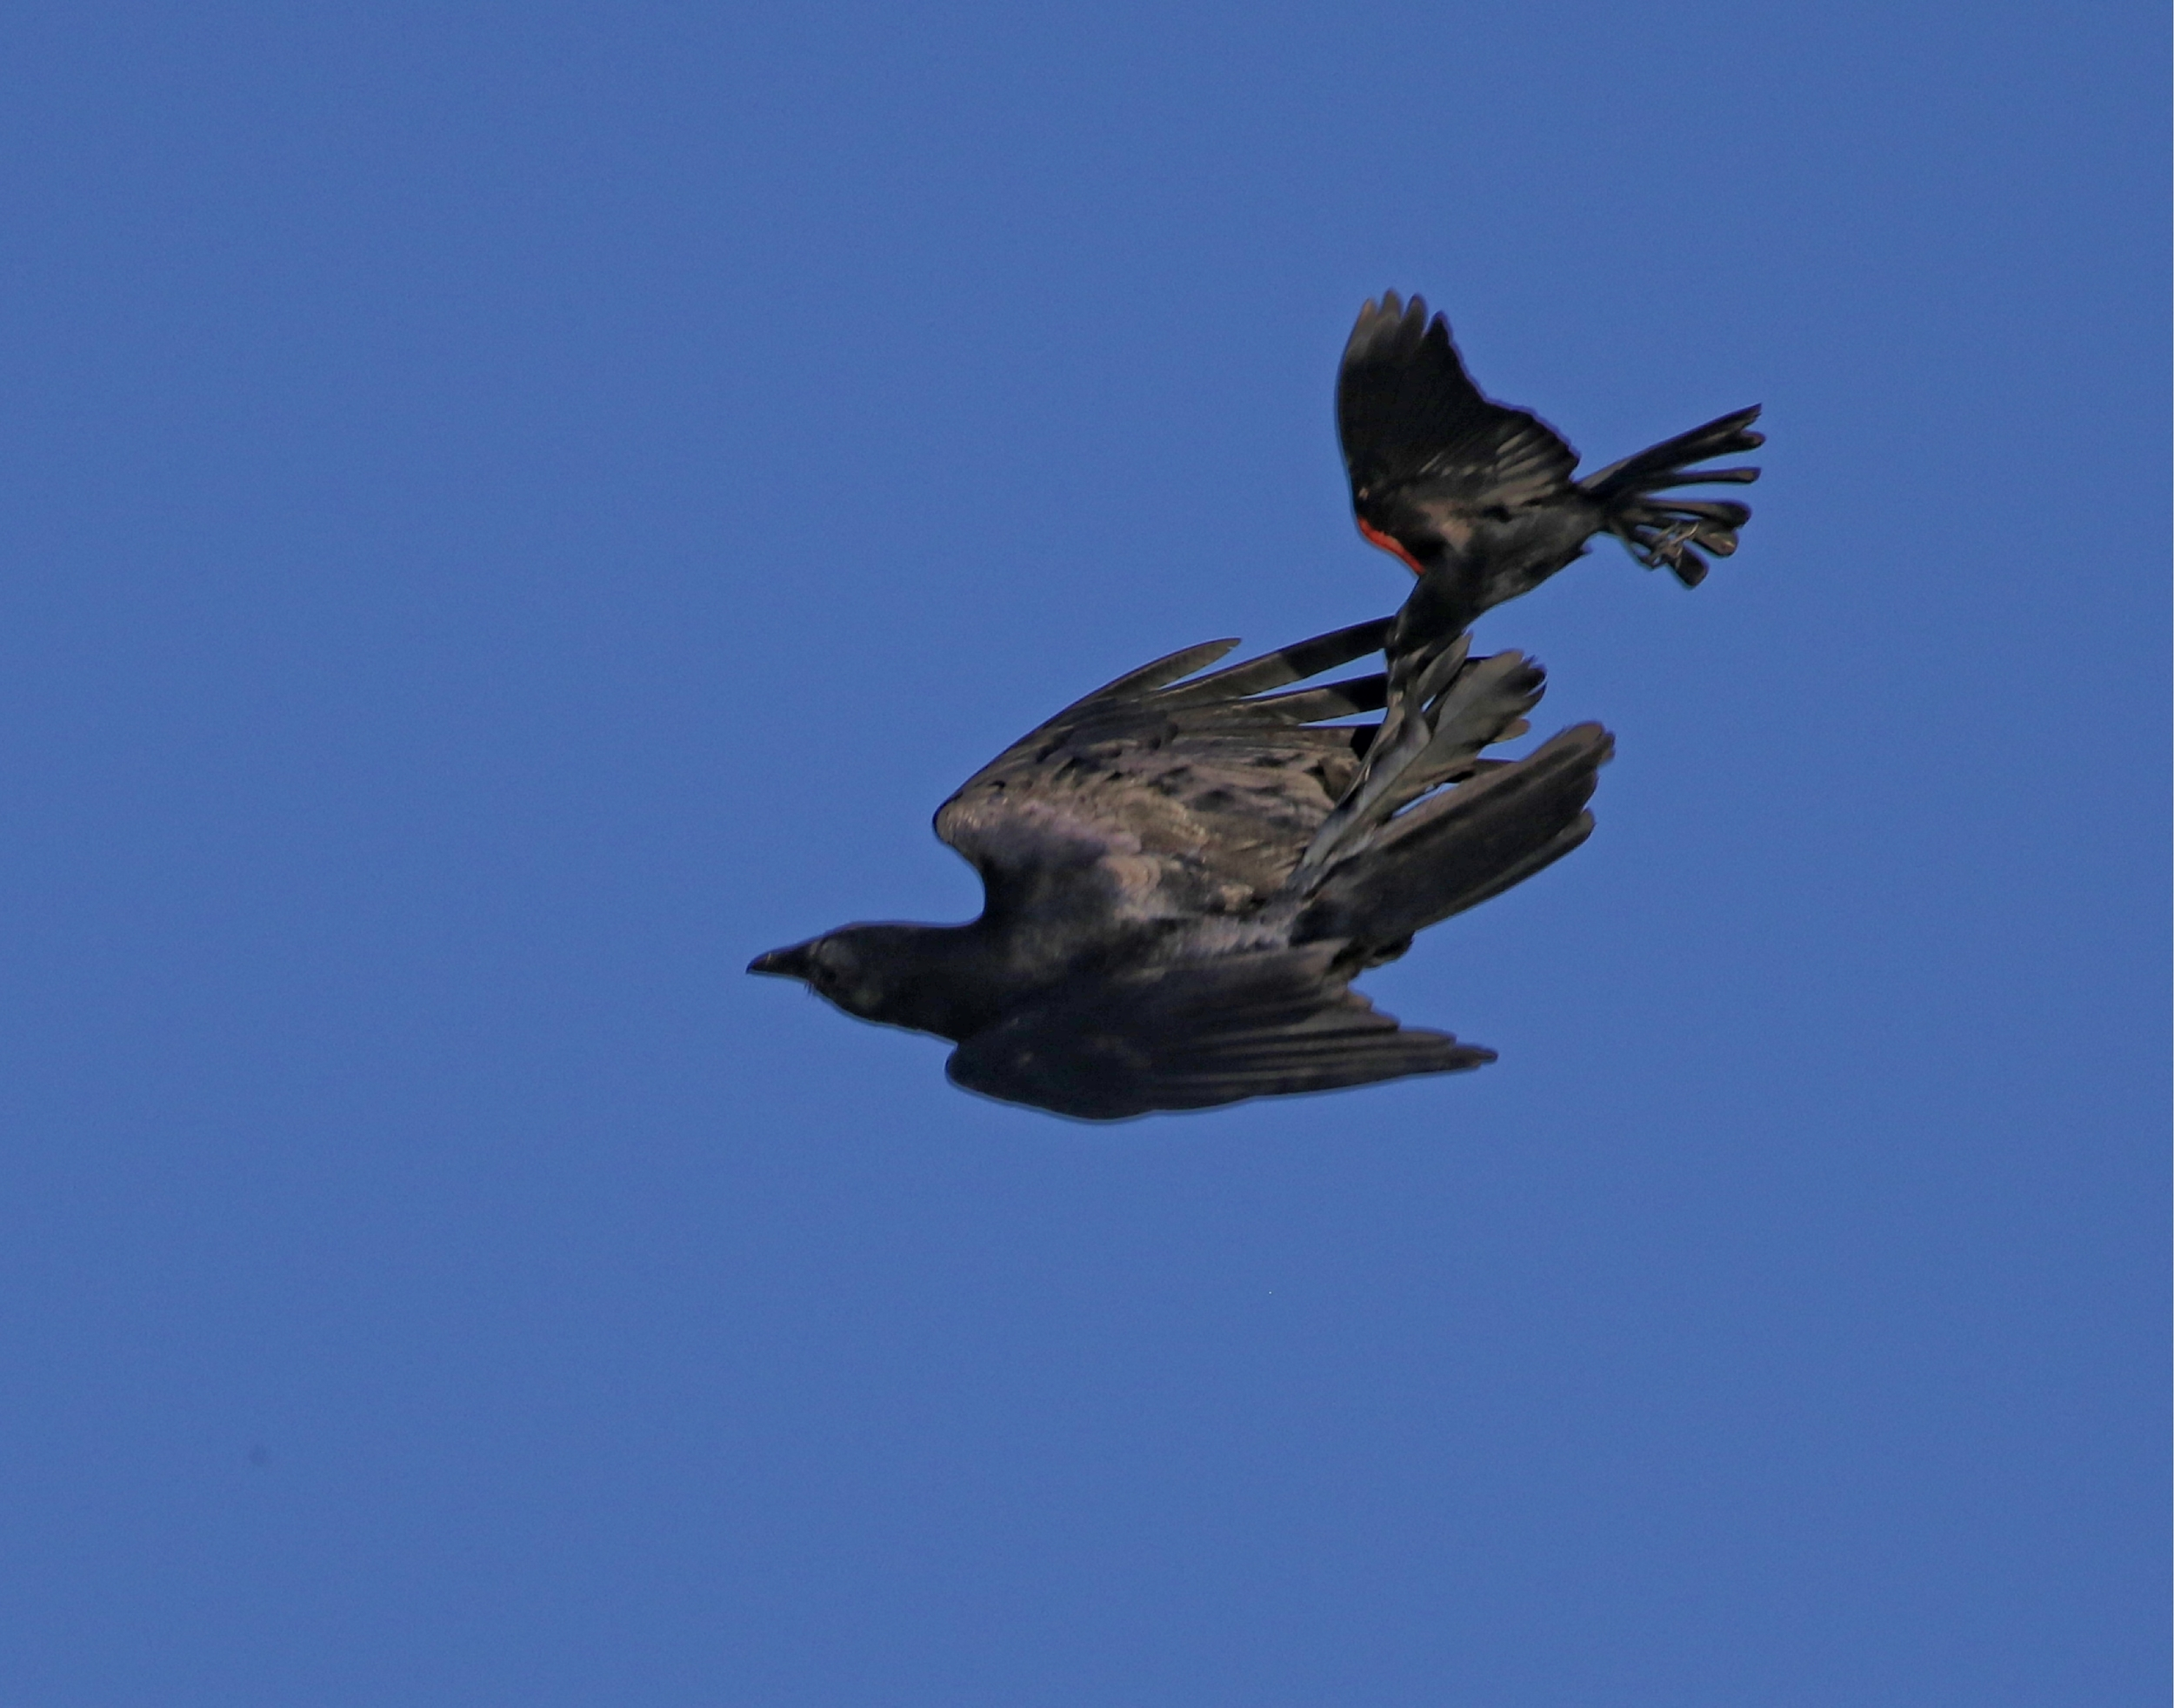 And Stay out of here!…Plucky lil red winged Blackbird grabs the crow by the tail!